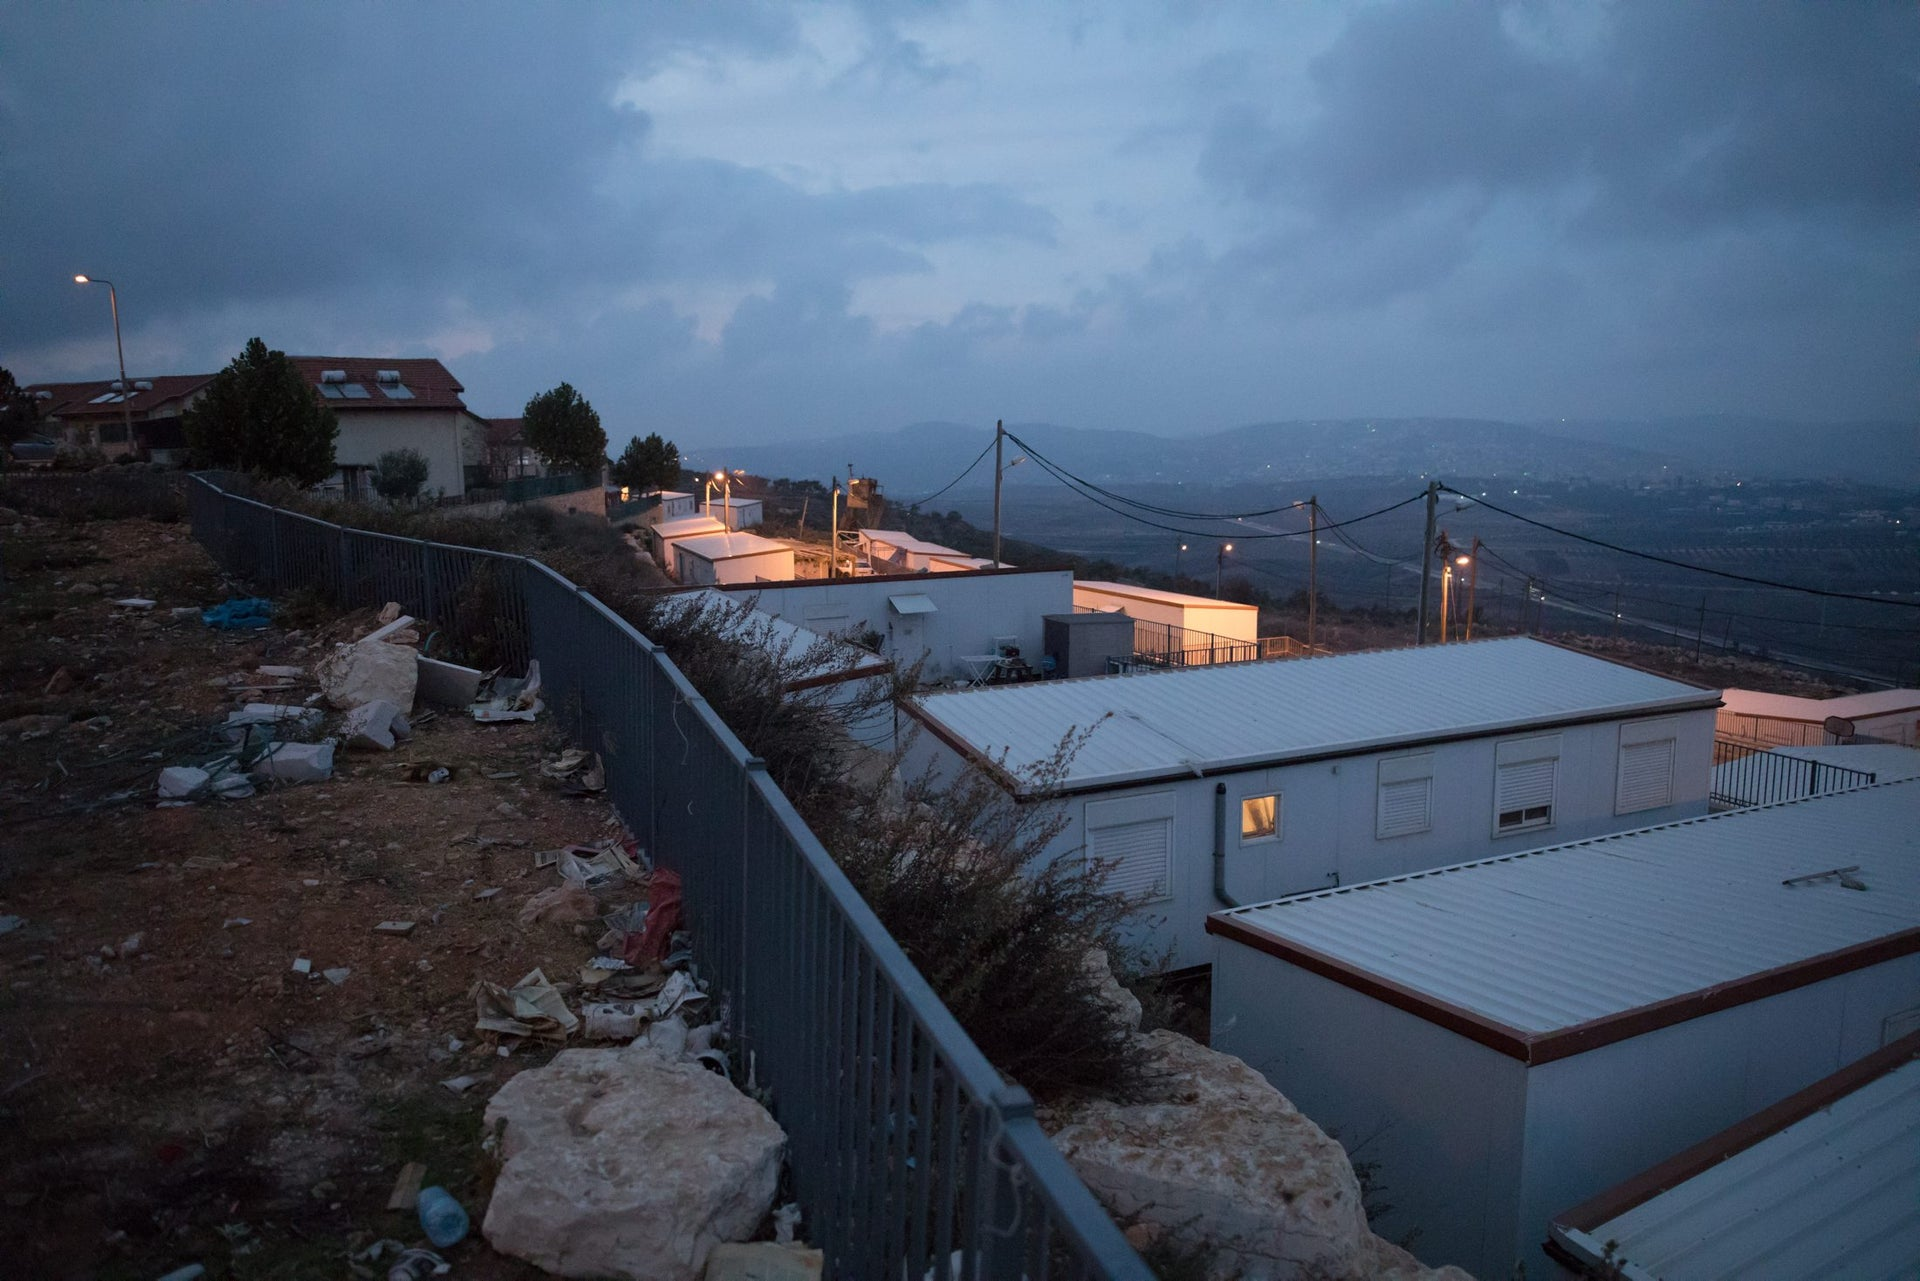 Mobile homes in the West Bank settlement of Migdalim.